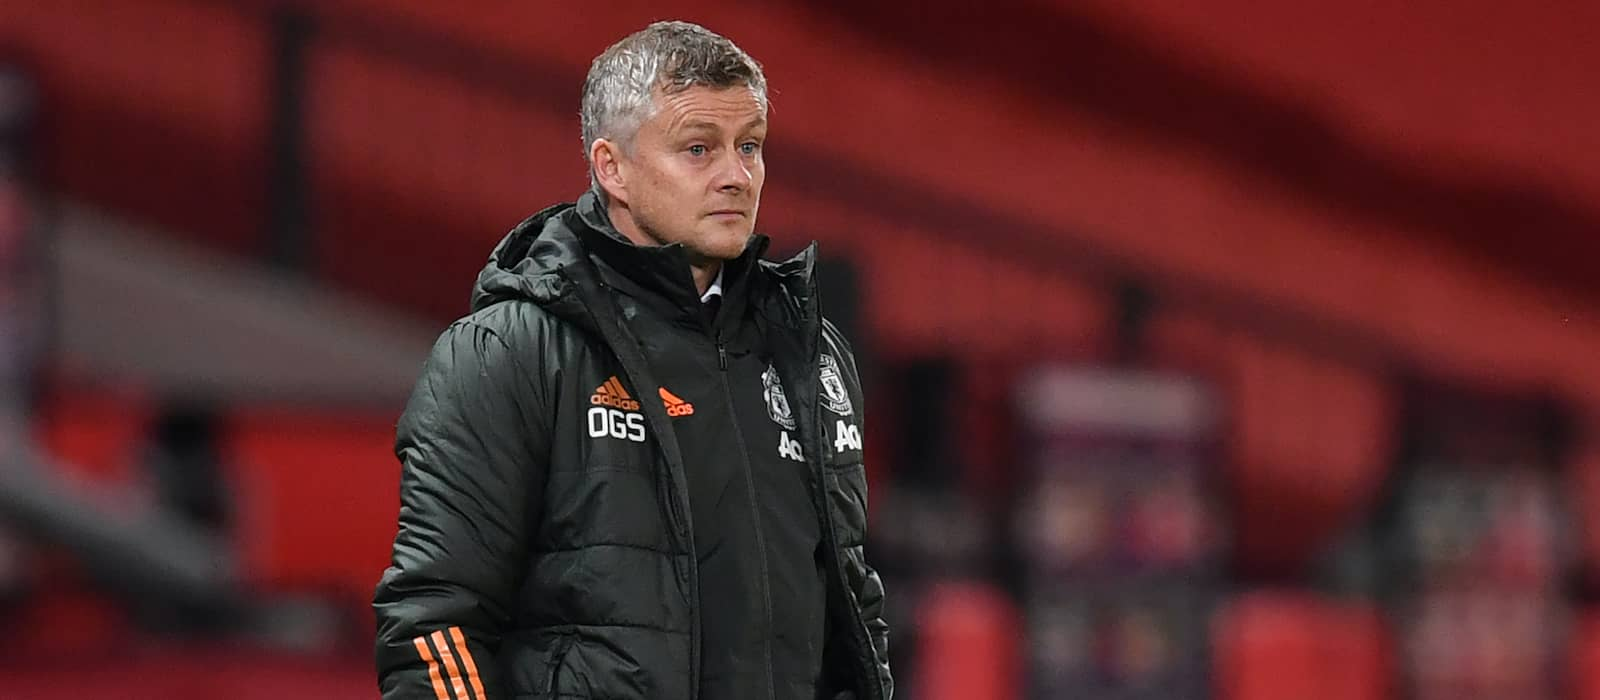 The four omens that suggest Ole Gunnar Solskjaer's time is nigh